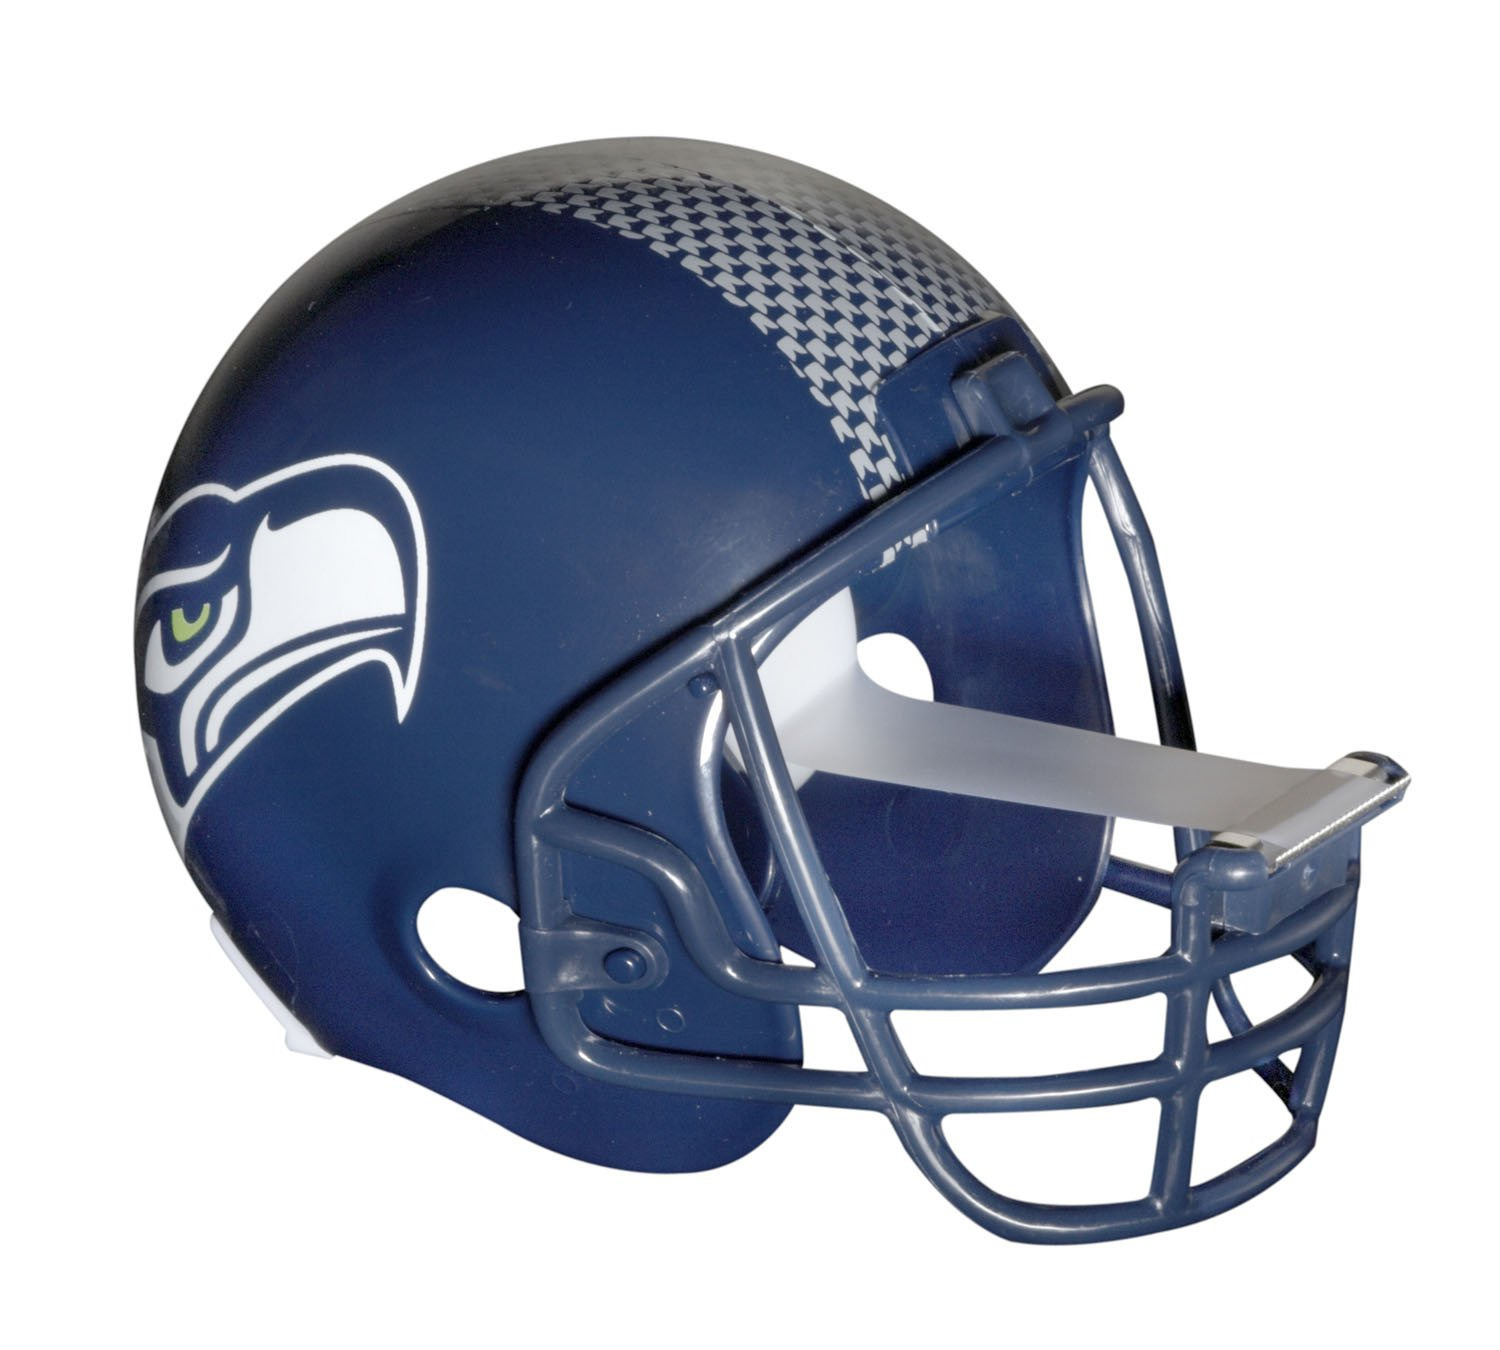 Scotch Magic Tape Dispenser, Seattle Seahawks Football Helmet with 1 Roll of 3/4 x 350 Inches Tape